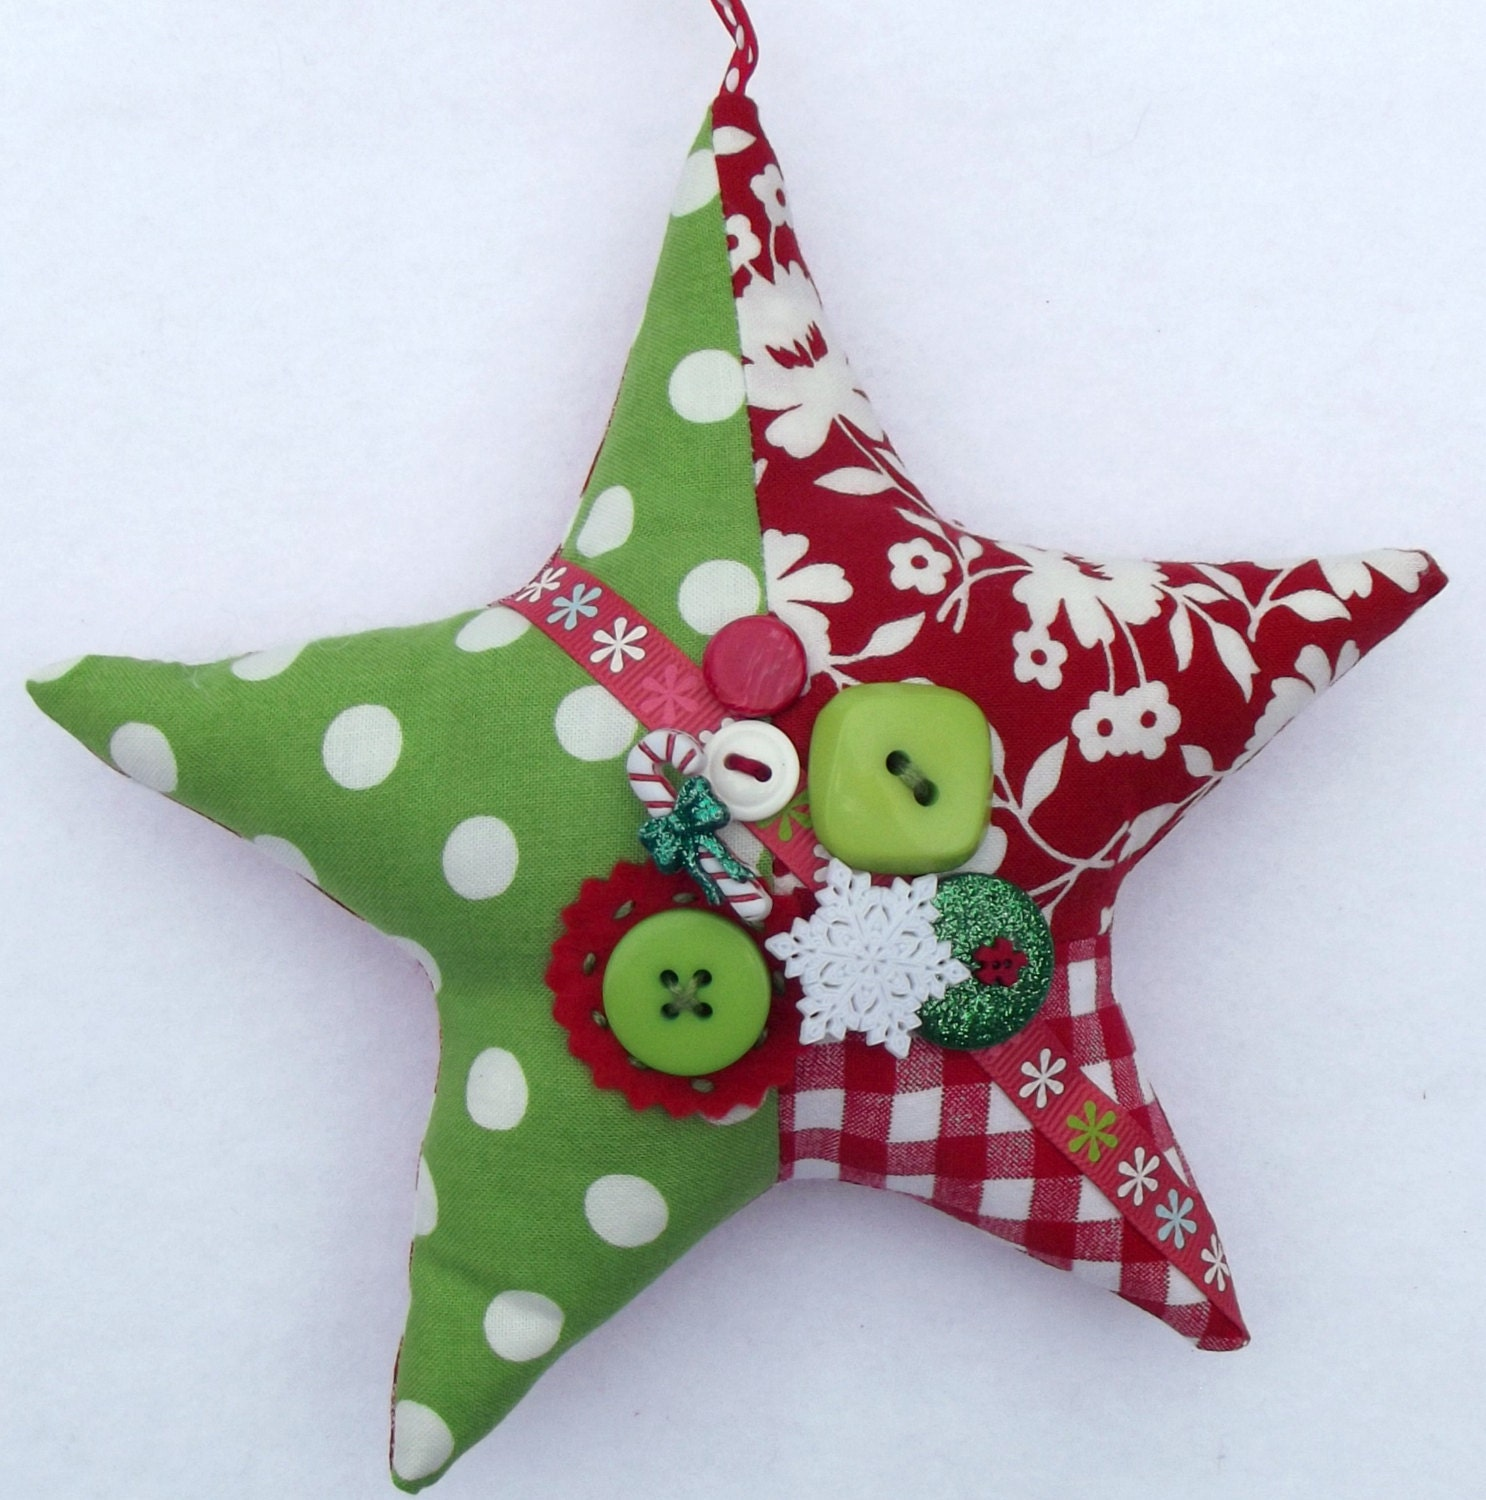 CIJ, christmasinjuly, Star ornament, Christmas Star ornament, Patchwork Star - PigeonHouseHandmade